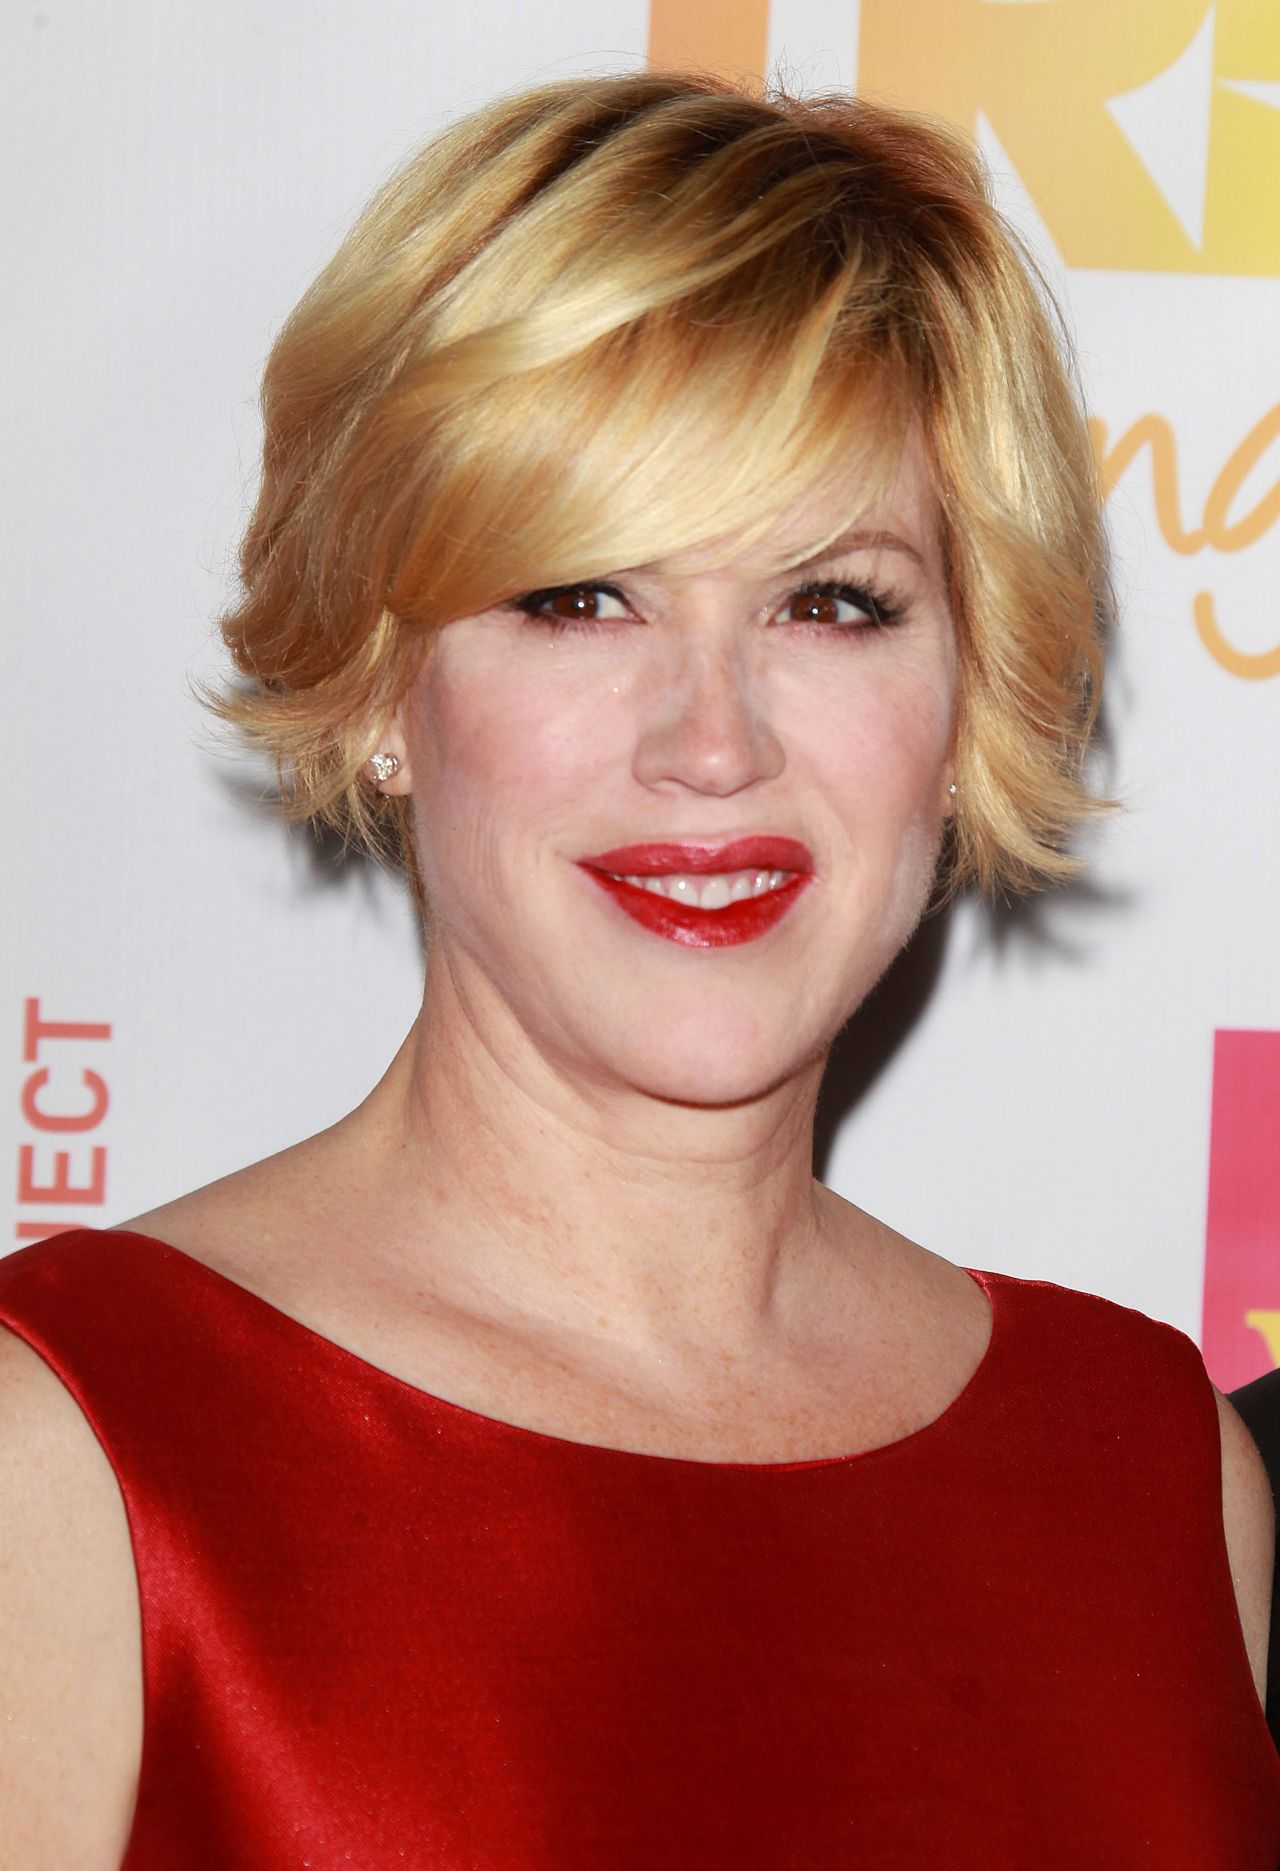 Molly Ringwald Trevorlive The Trevor Project Event In